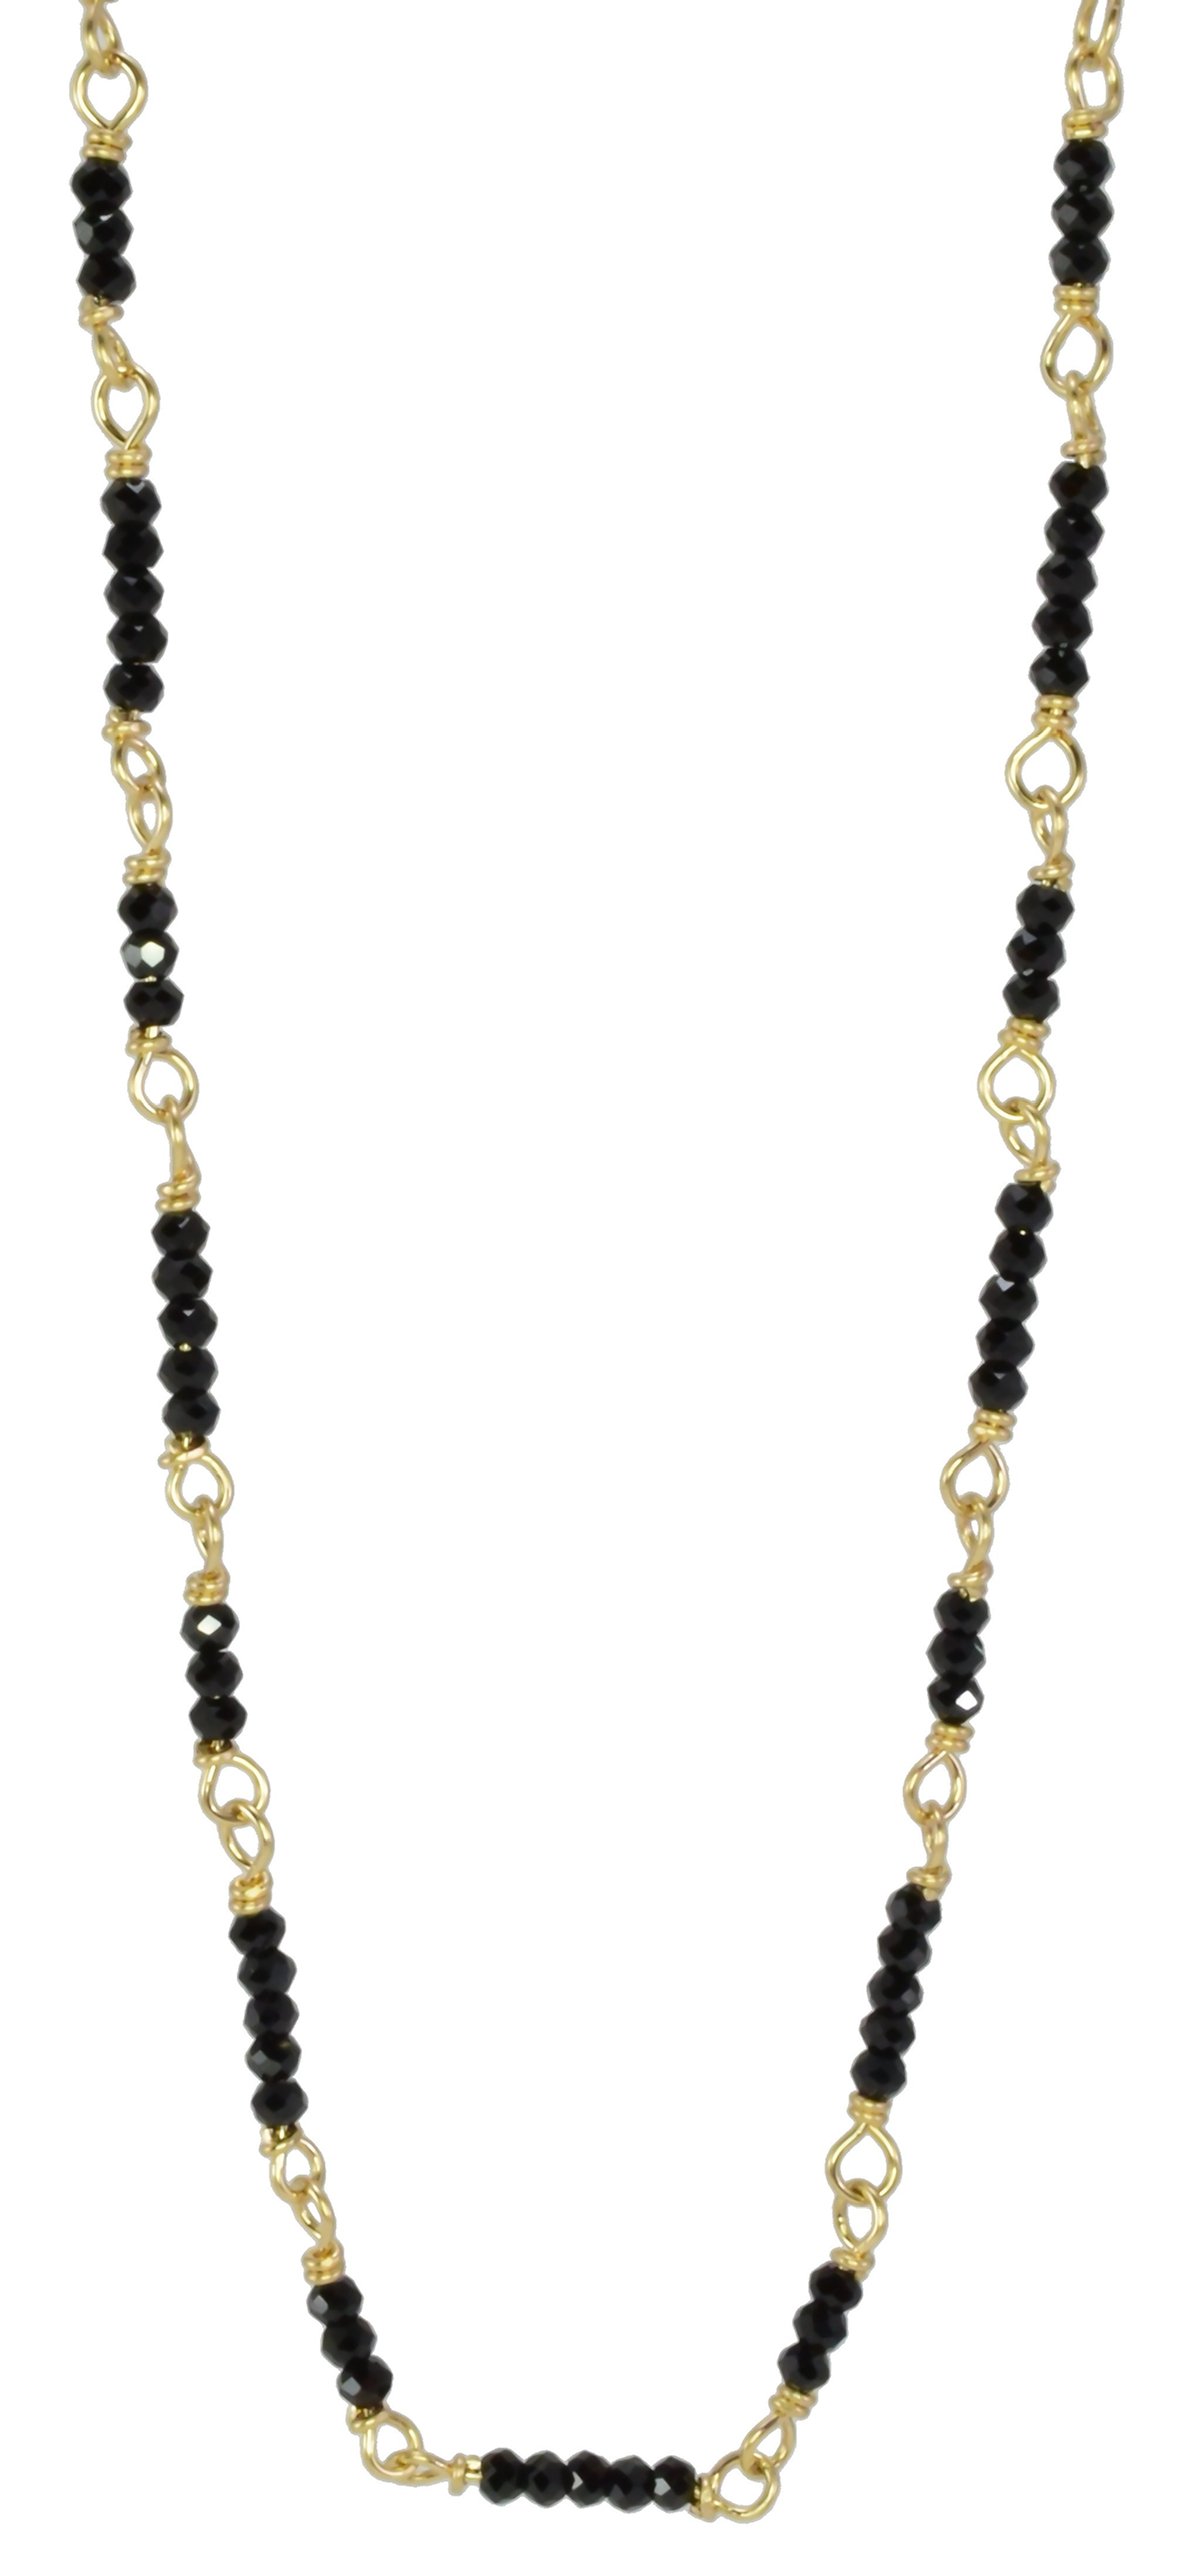 Black Spinel Chain Necklace 18